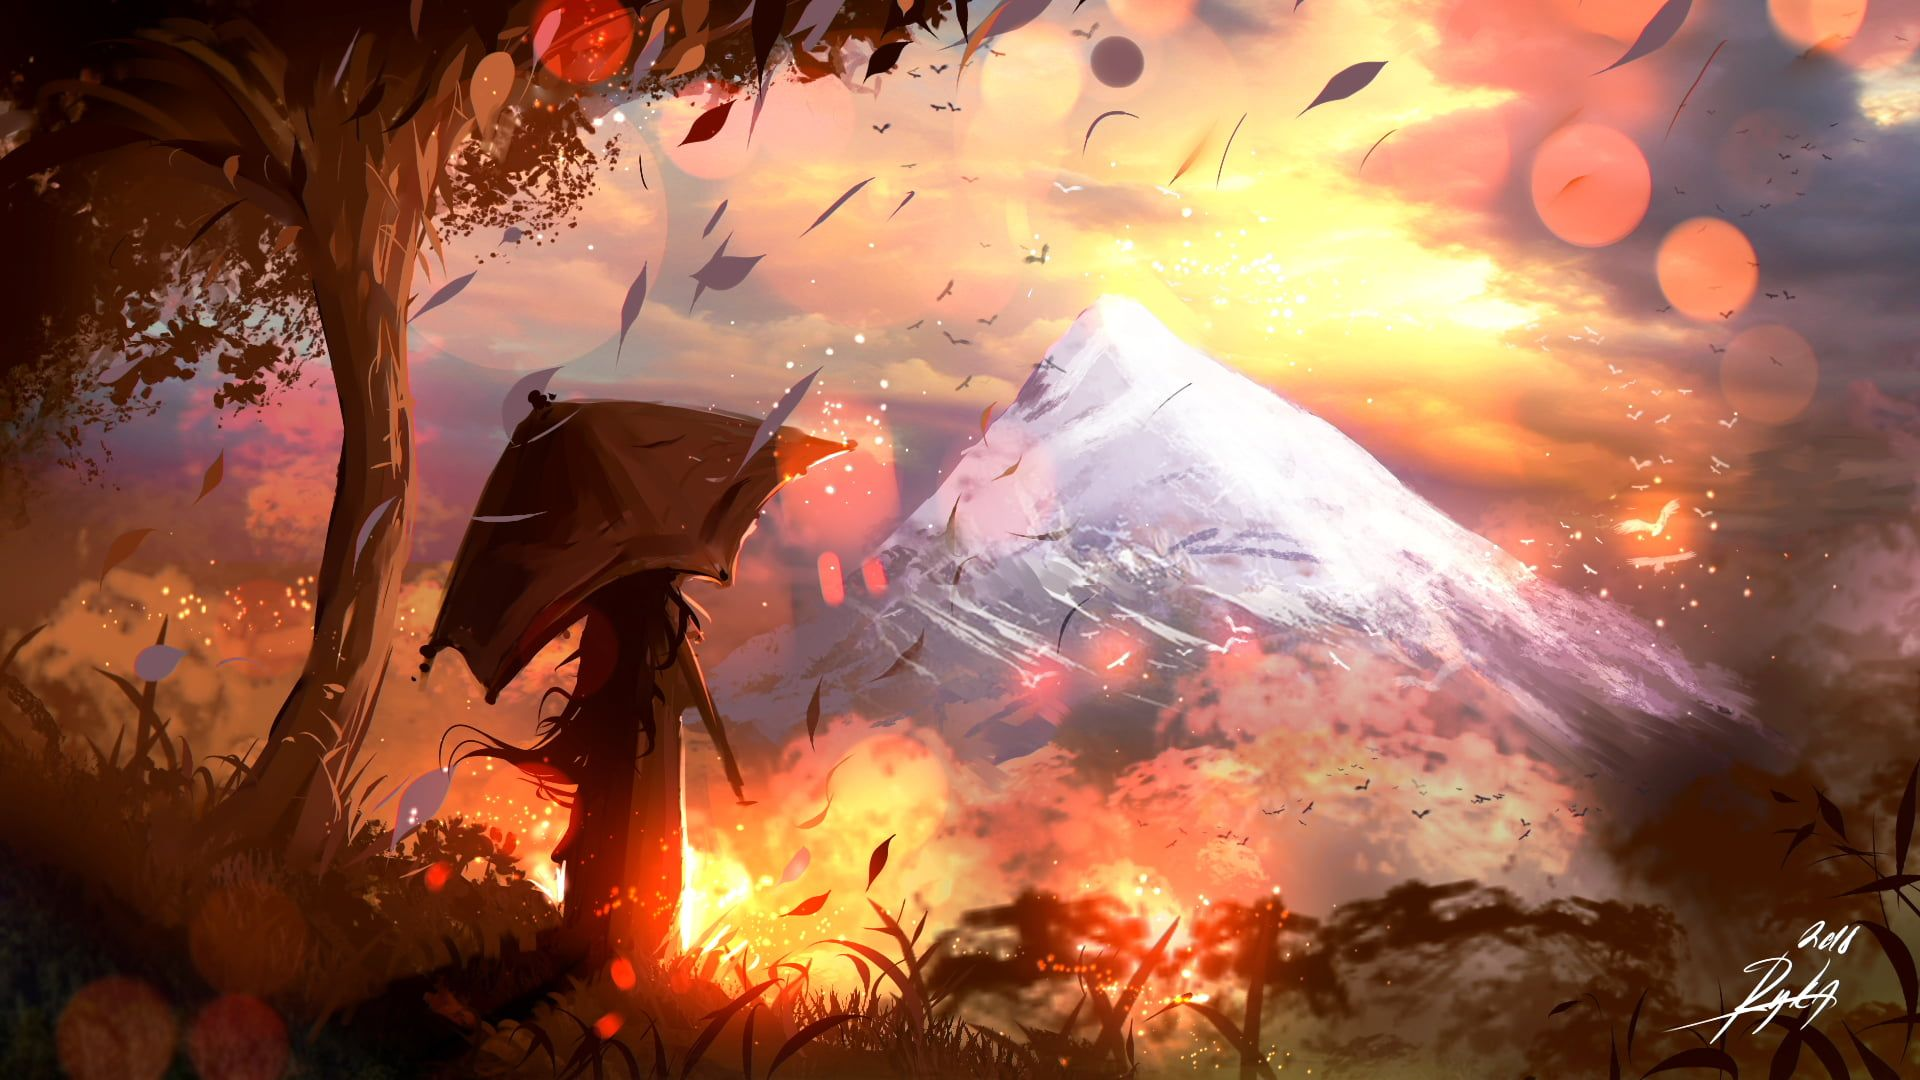 Signed Person Holding Umbrella With Facing Mountain Painting Artwork Fantasy Art Mountains Umbrella Trees In 2021 Fall Wallpaper Anime Wallpaper Mountain Paintings Anime fall wallpaper laptop